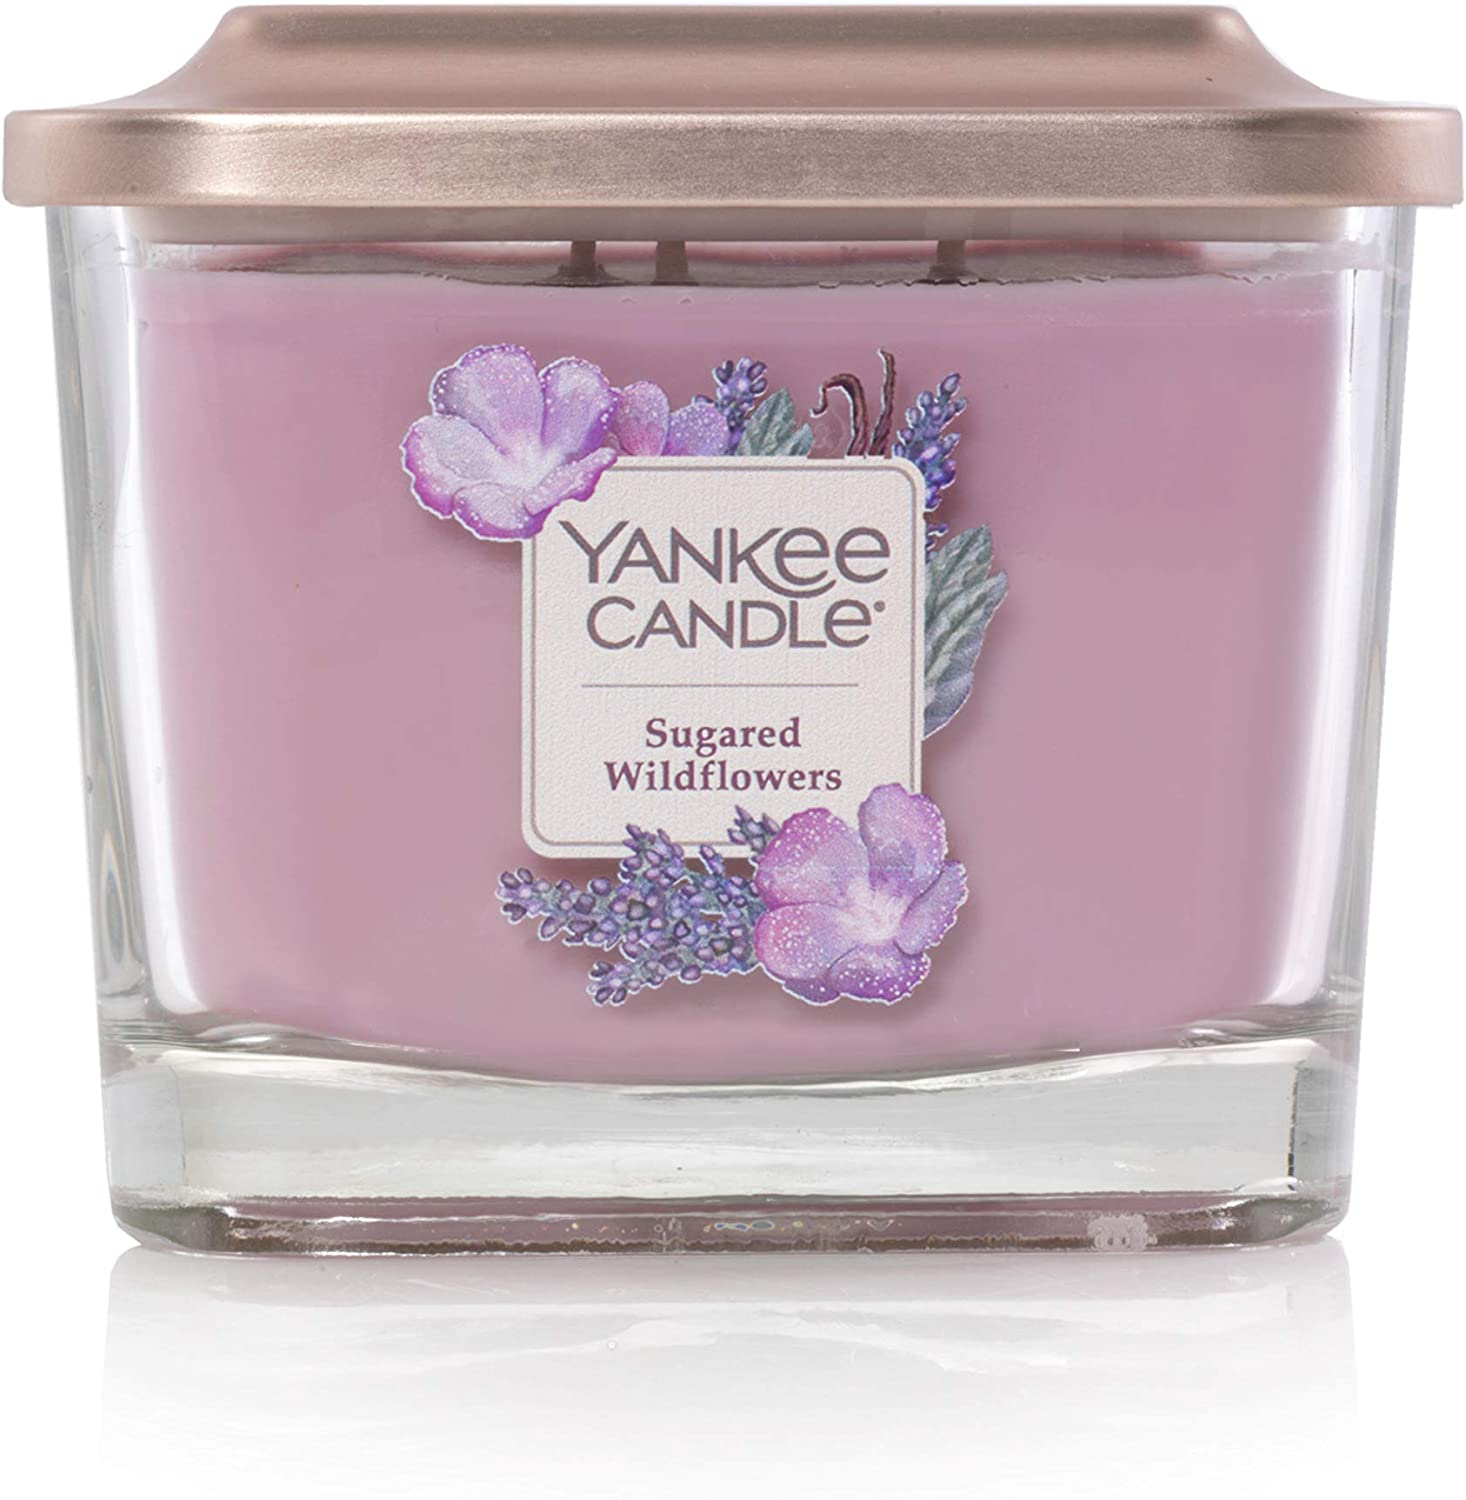 Yankee Candle Elevation Collection with Platform Lid Sugared Wildflower Scented Candle, Medium 3-Wick, 38 Hour Burn Time